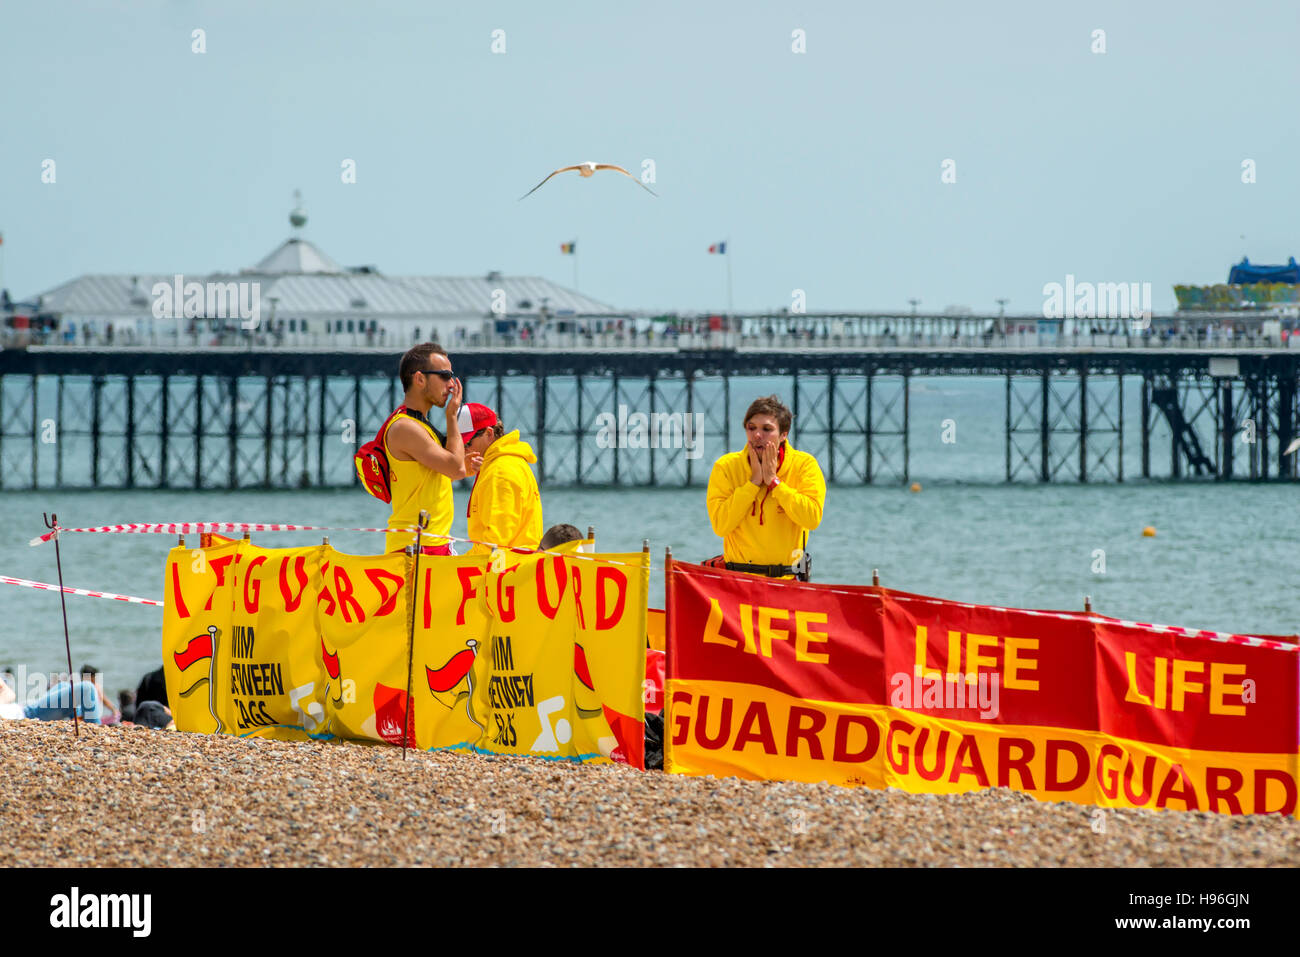 Lifeguards on Brighton Beach - Stock Image